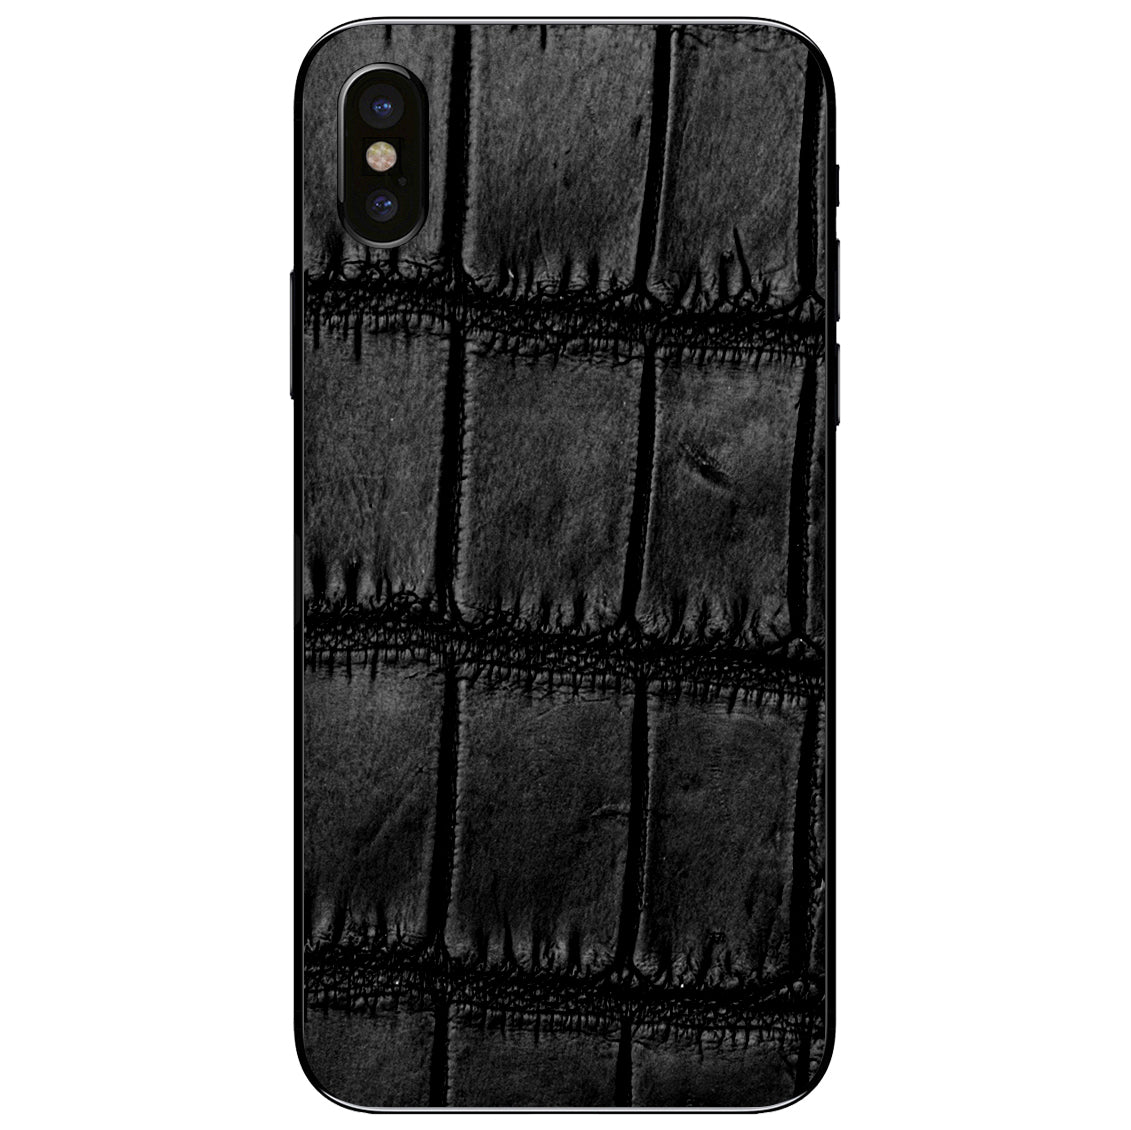 Oiled Black Alligator iPhone X Leather Skin